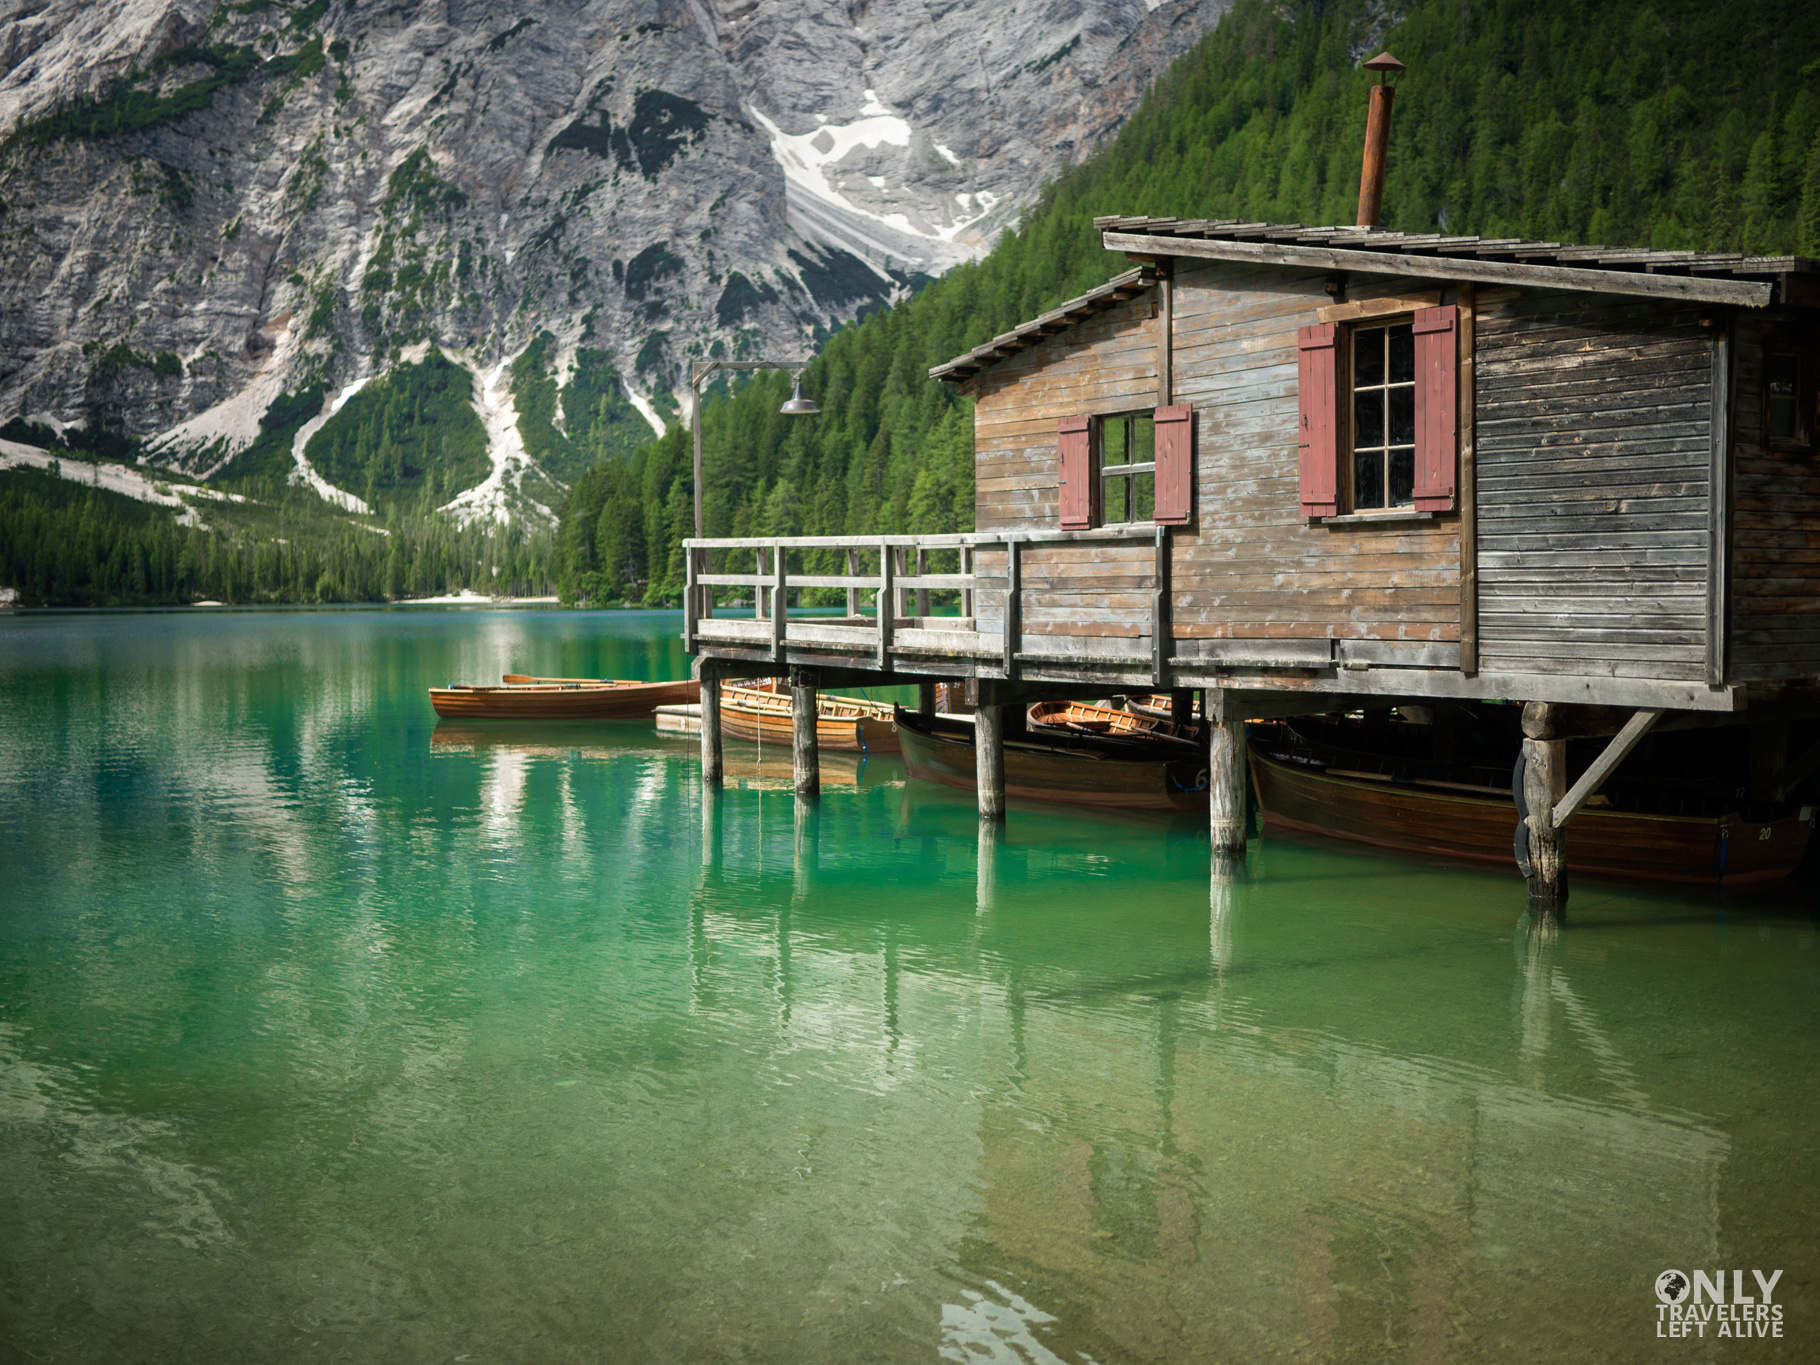 lago di braies dolomity only travelers left alive